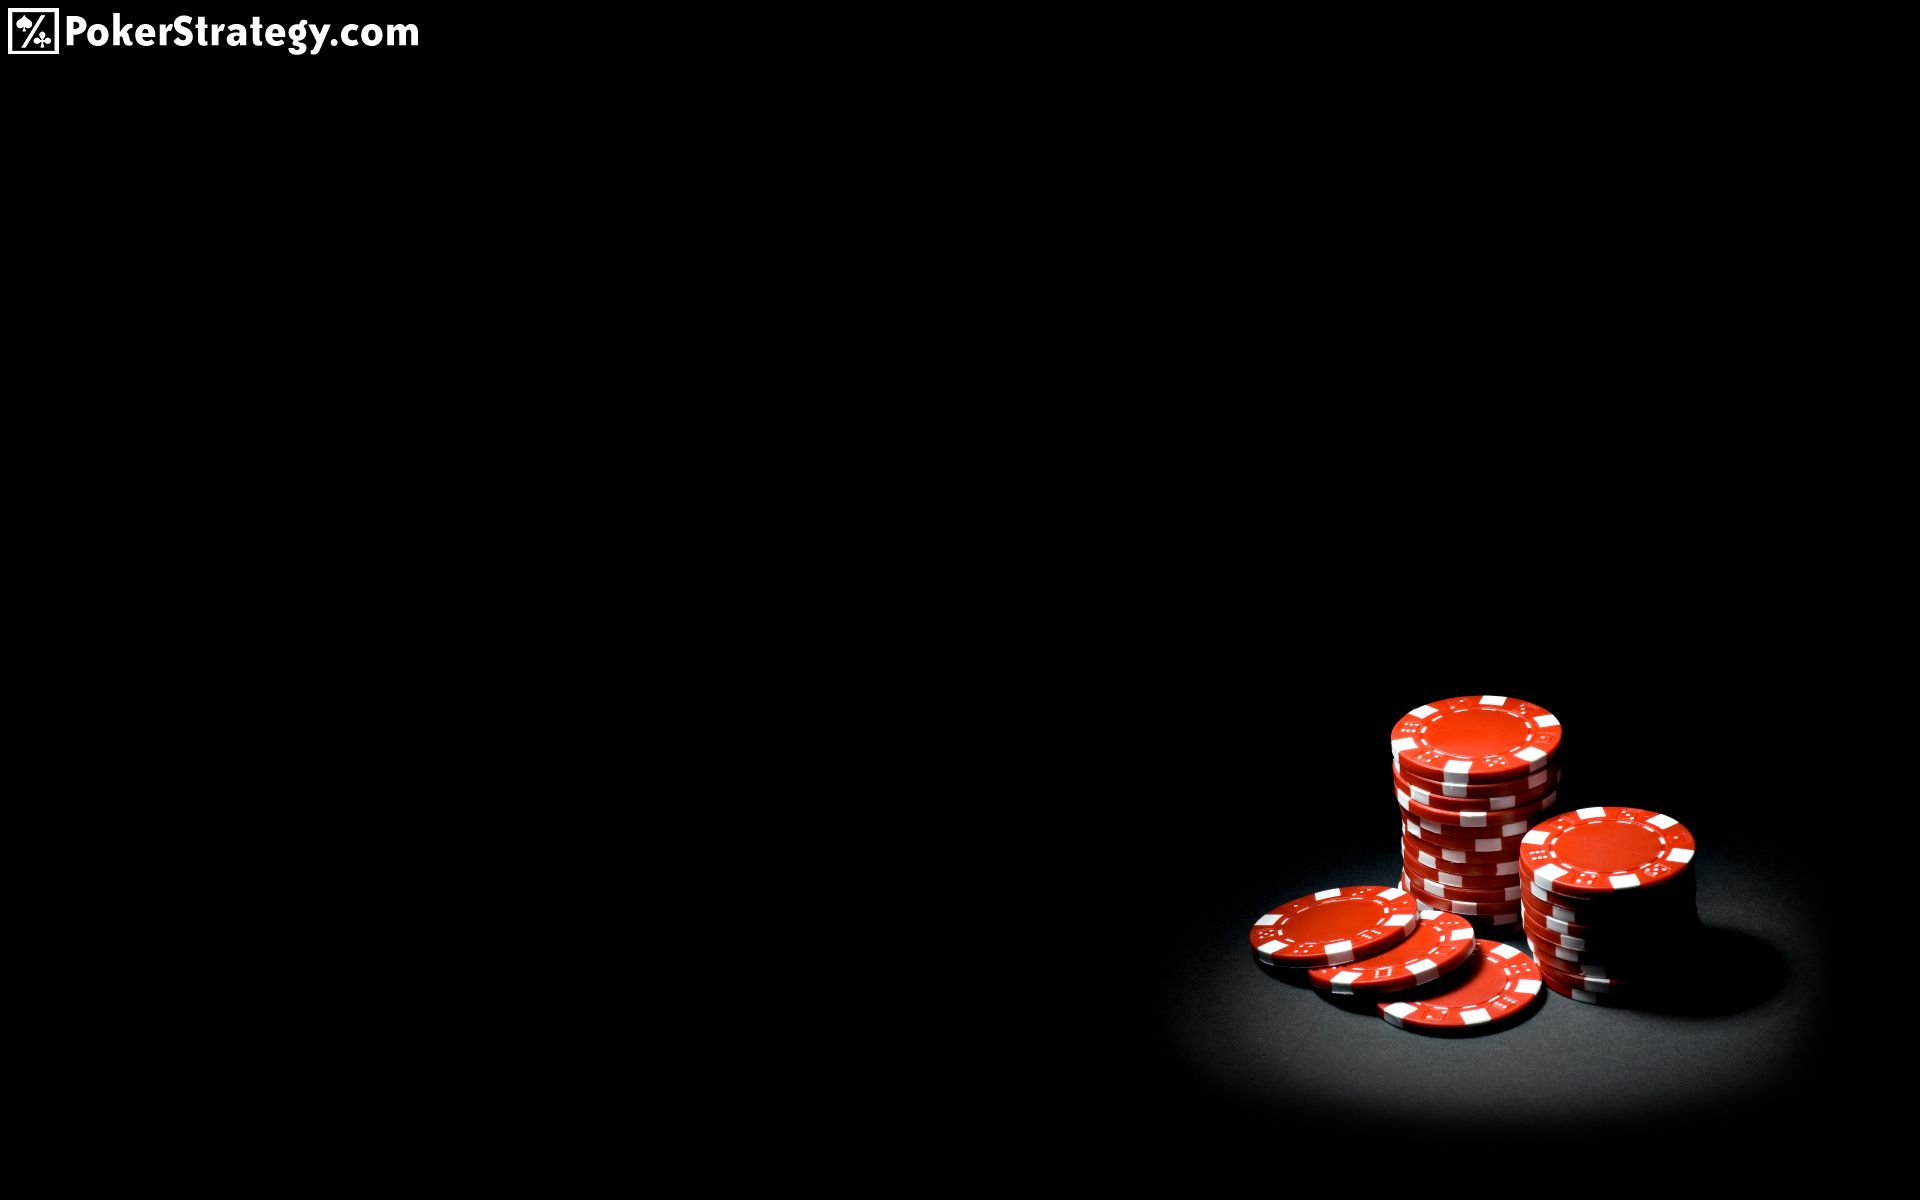 How To show Gambling Into Success